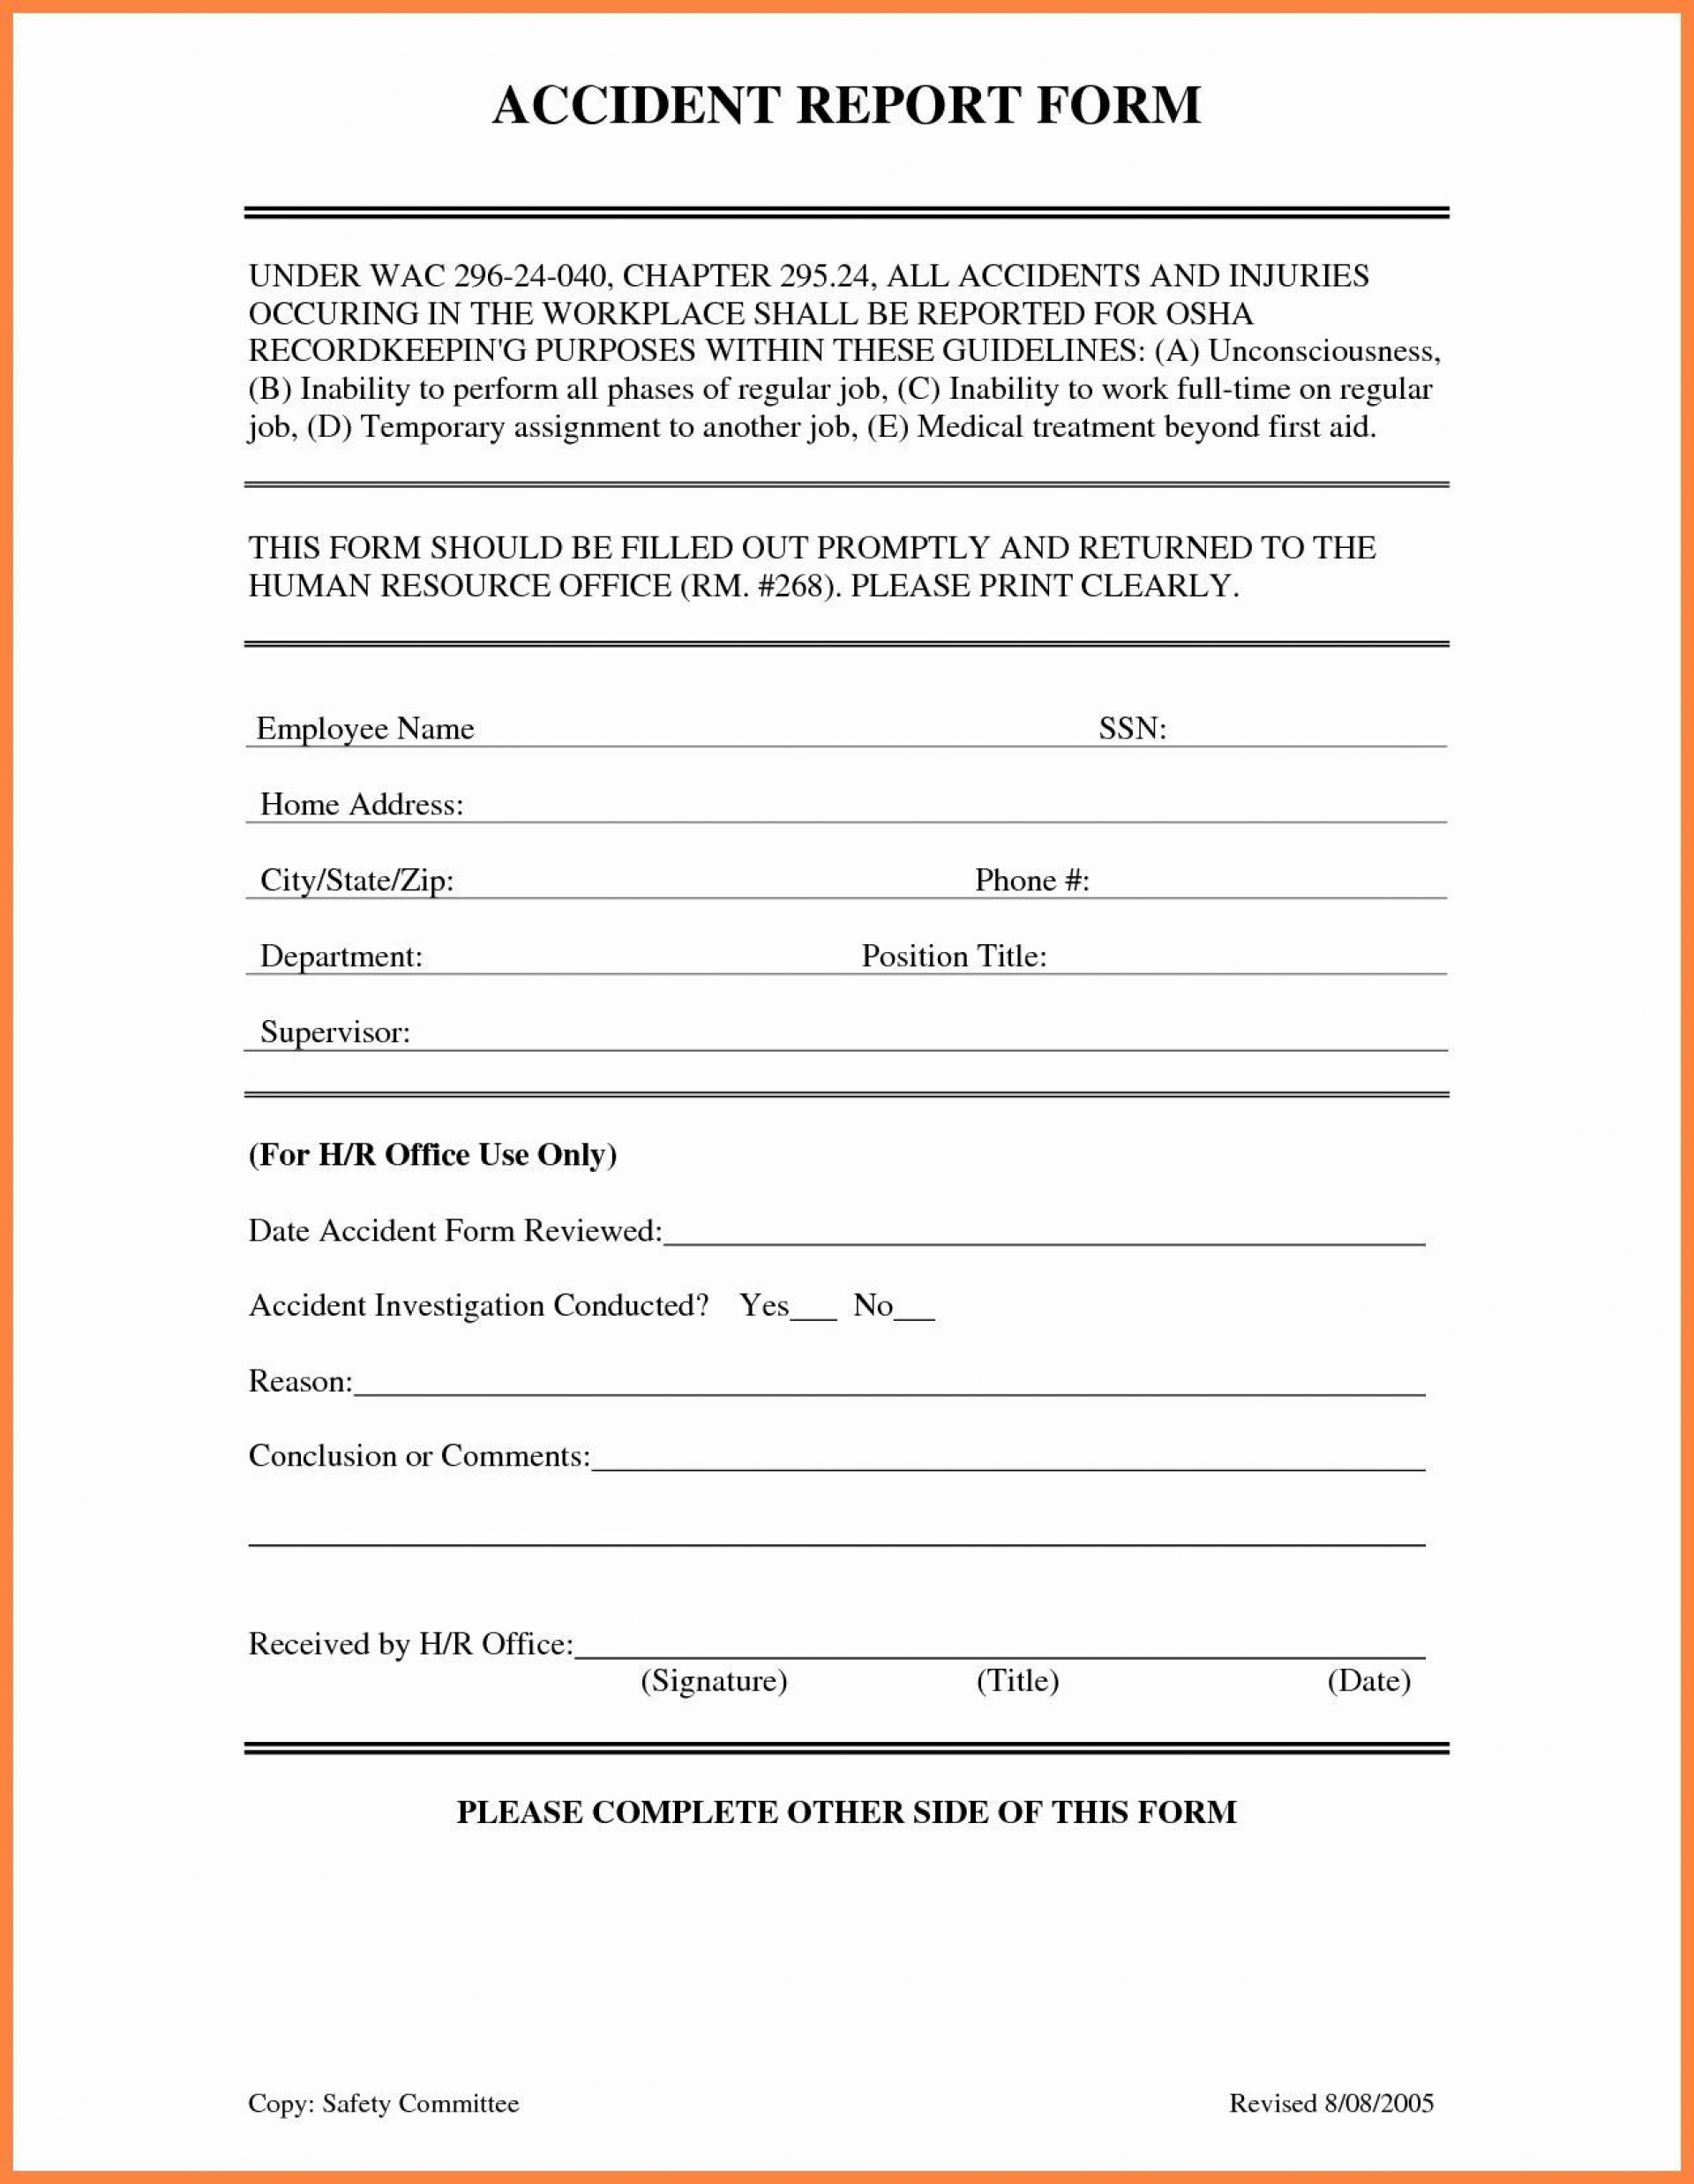 001 Amazing Workplace Incident Report Template Ontario Image  Form1920